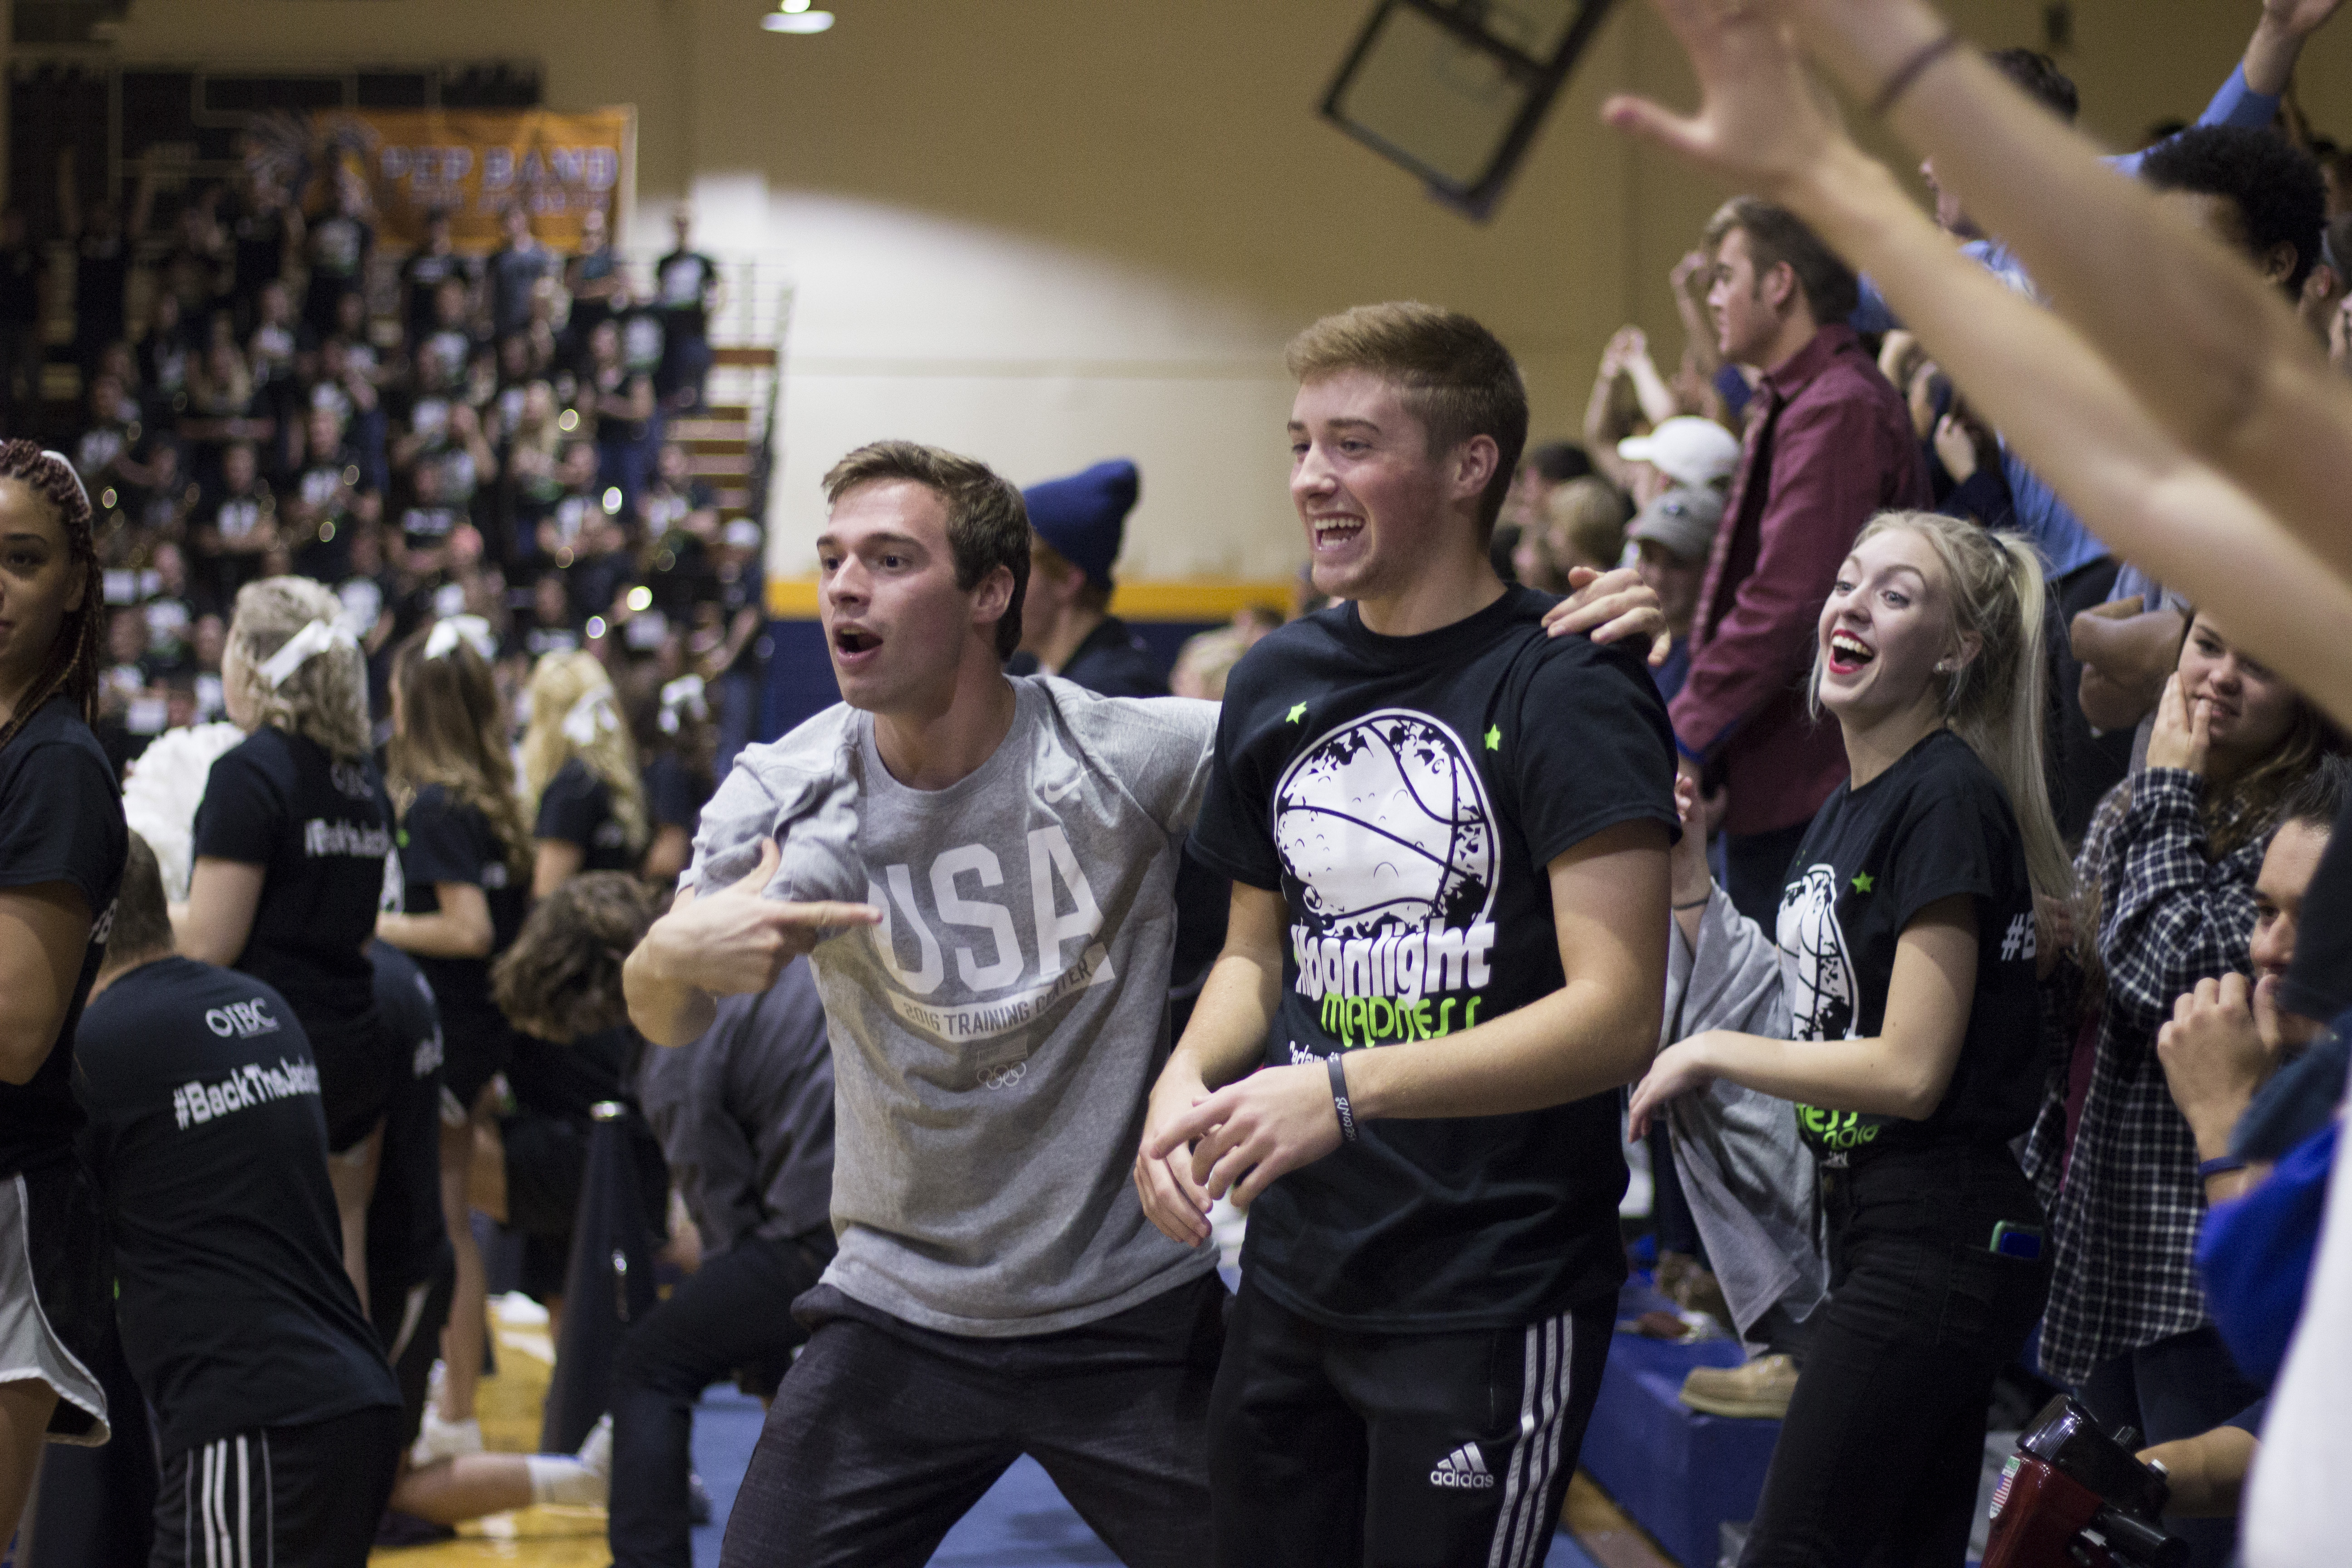 Students shamelessly dance for a chance to win a free t-shirt.